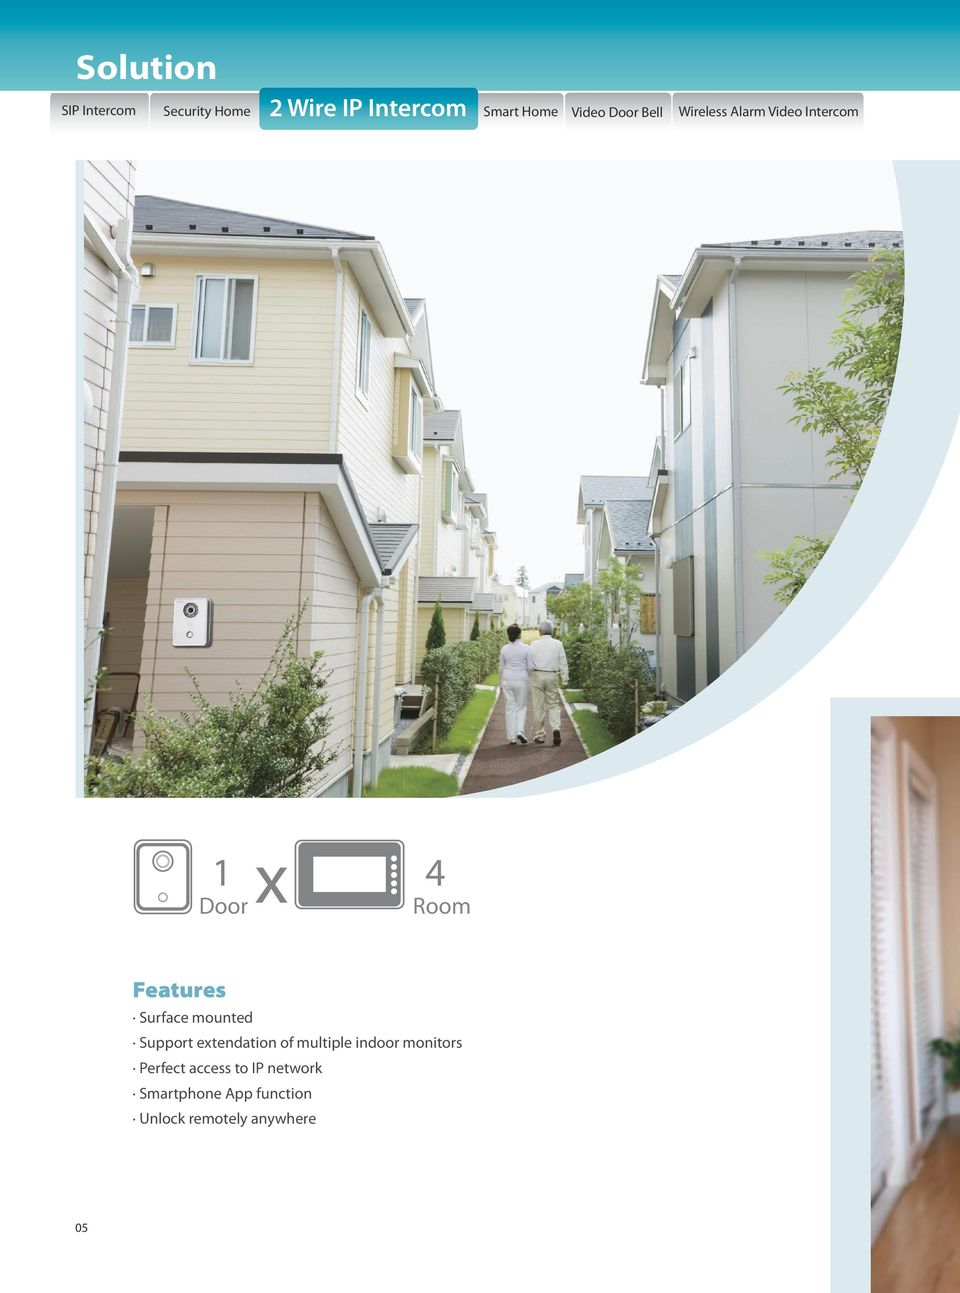 Ip Video Intercom Smart Home Tcp Solution For A House Wiring Needed Surface Mounted Support Extendation Of Multiple Indoor Monitors